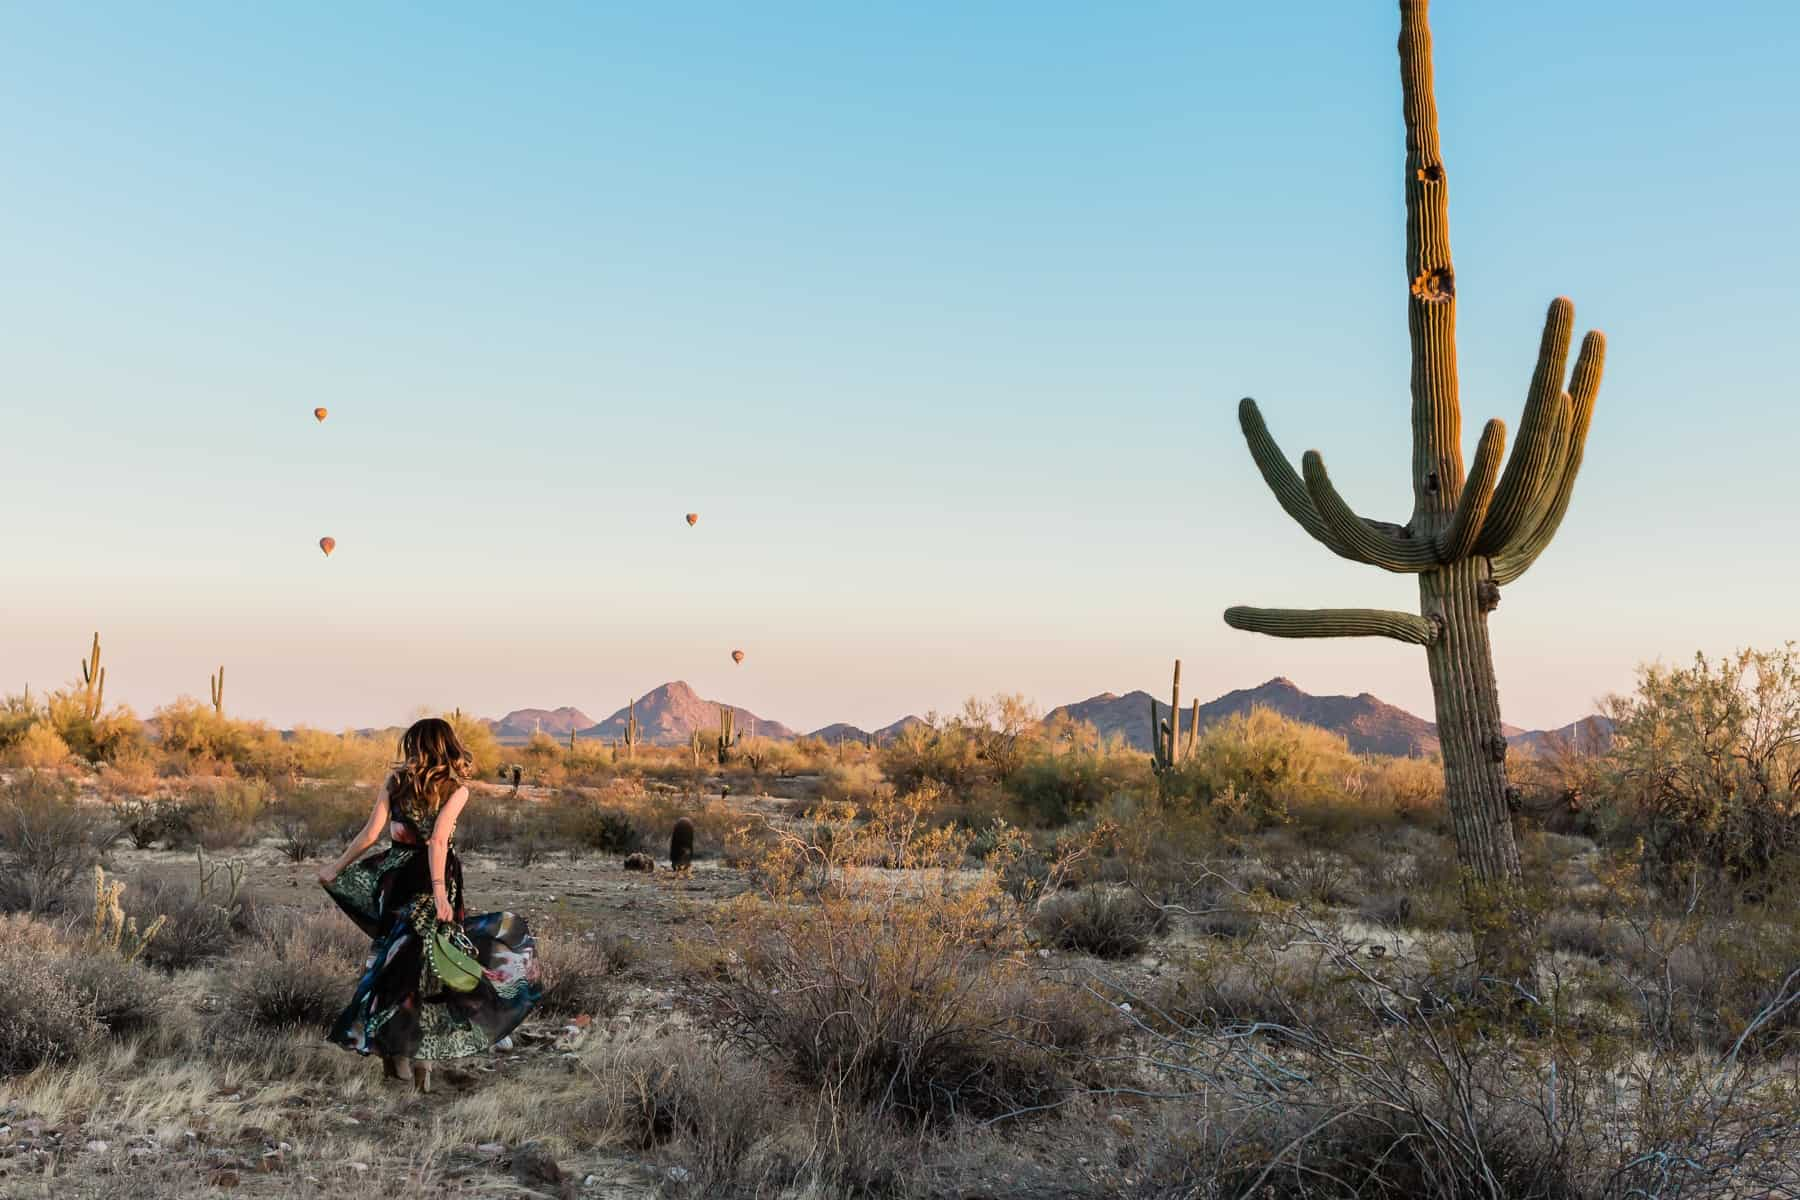 Weekend Getaway in Arizona | Things to do in Phoenix and Mesa